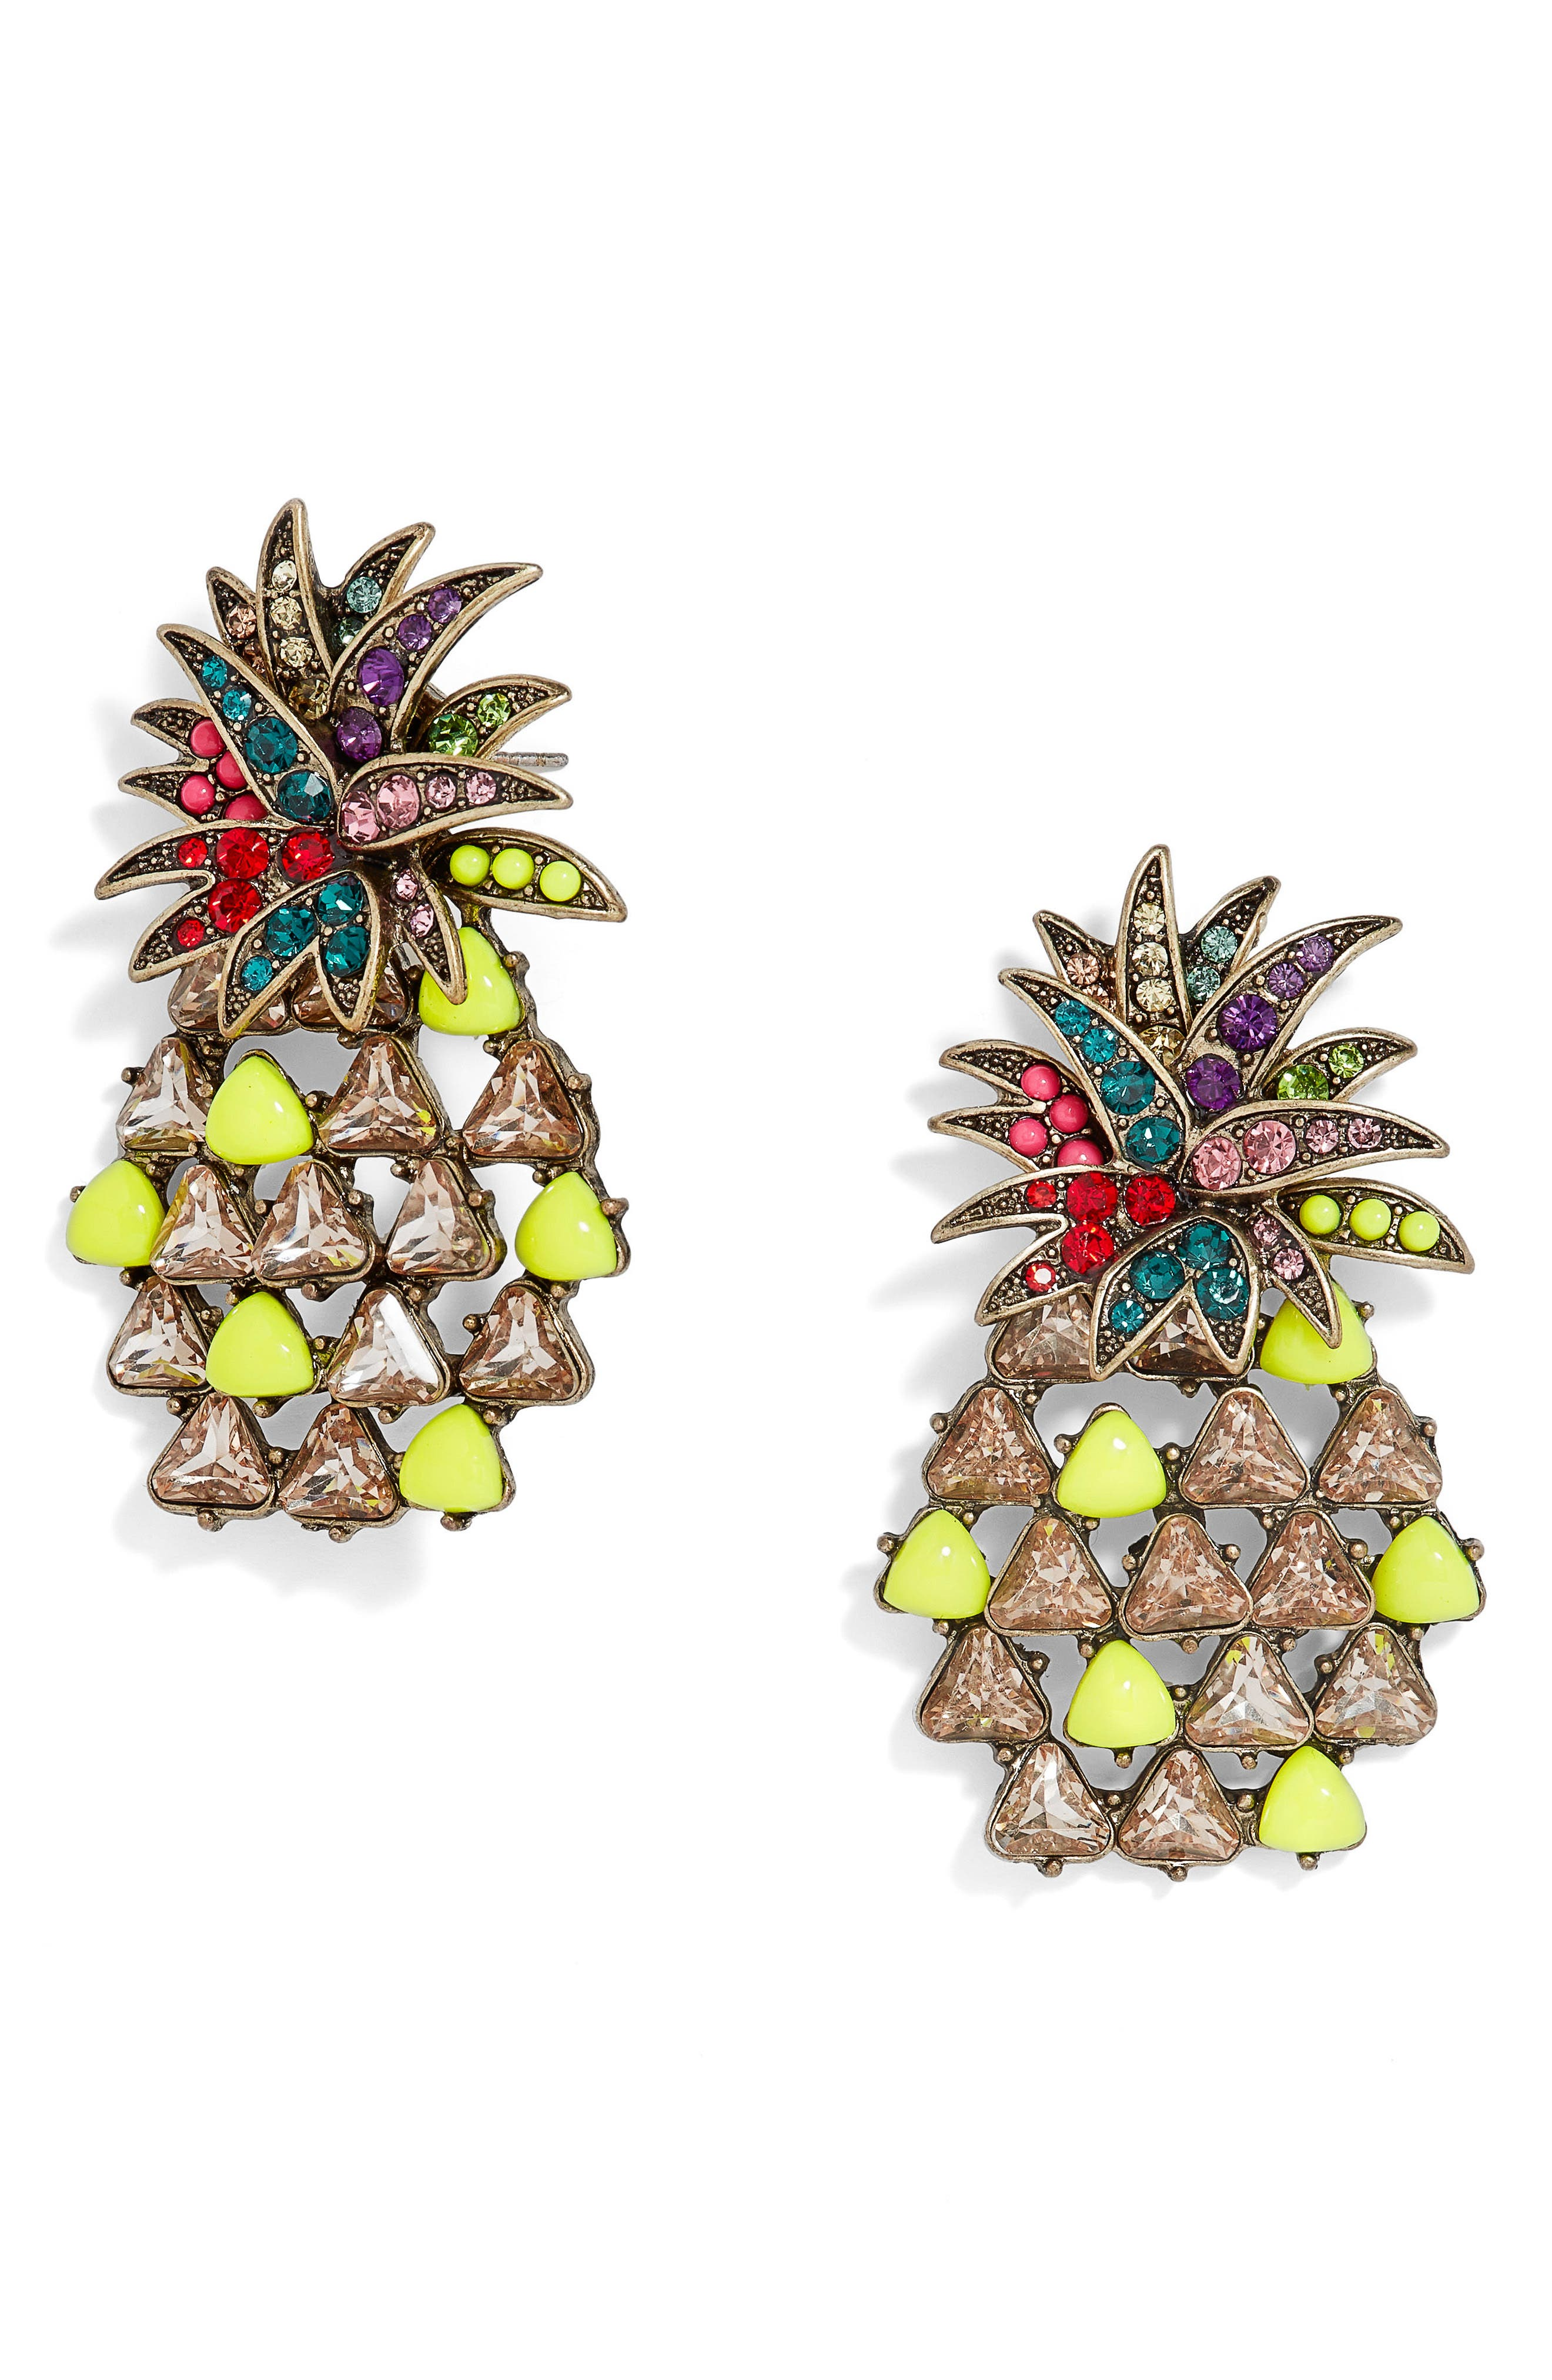 Pineapple Pop Large Stone Stud Earrings,                         Main,                         color, Neon Yellow